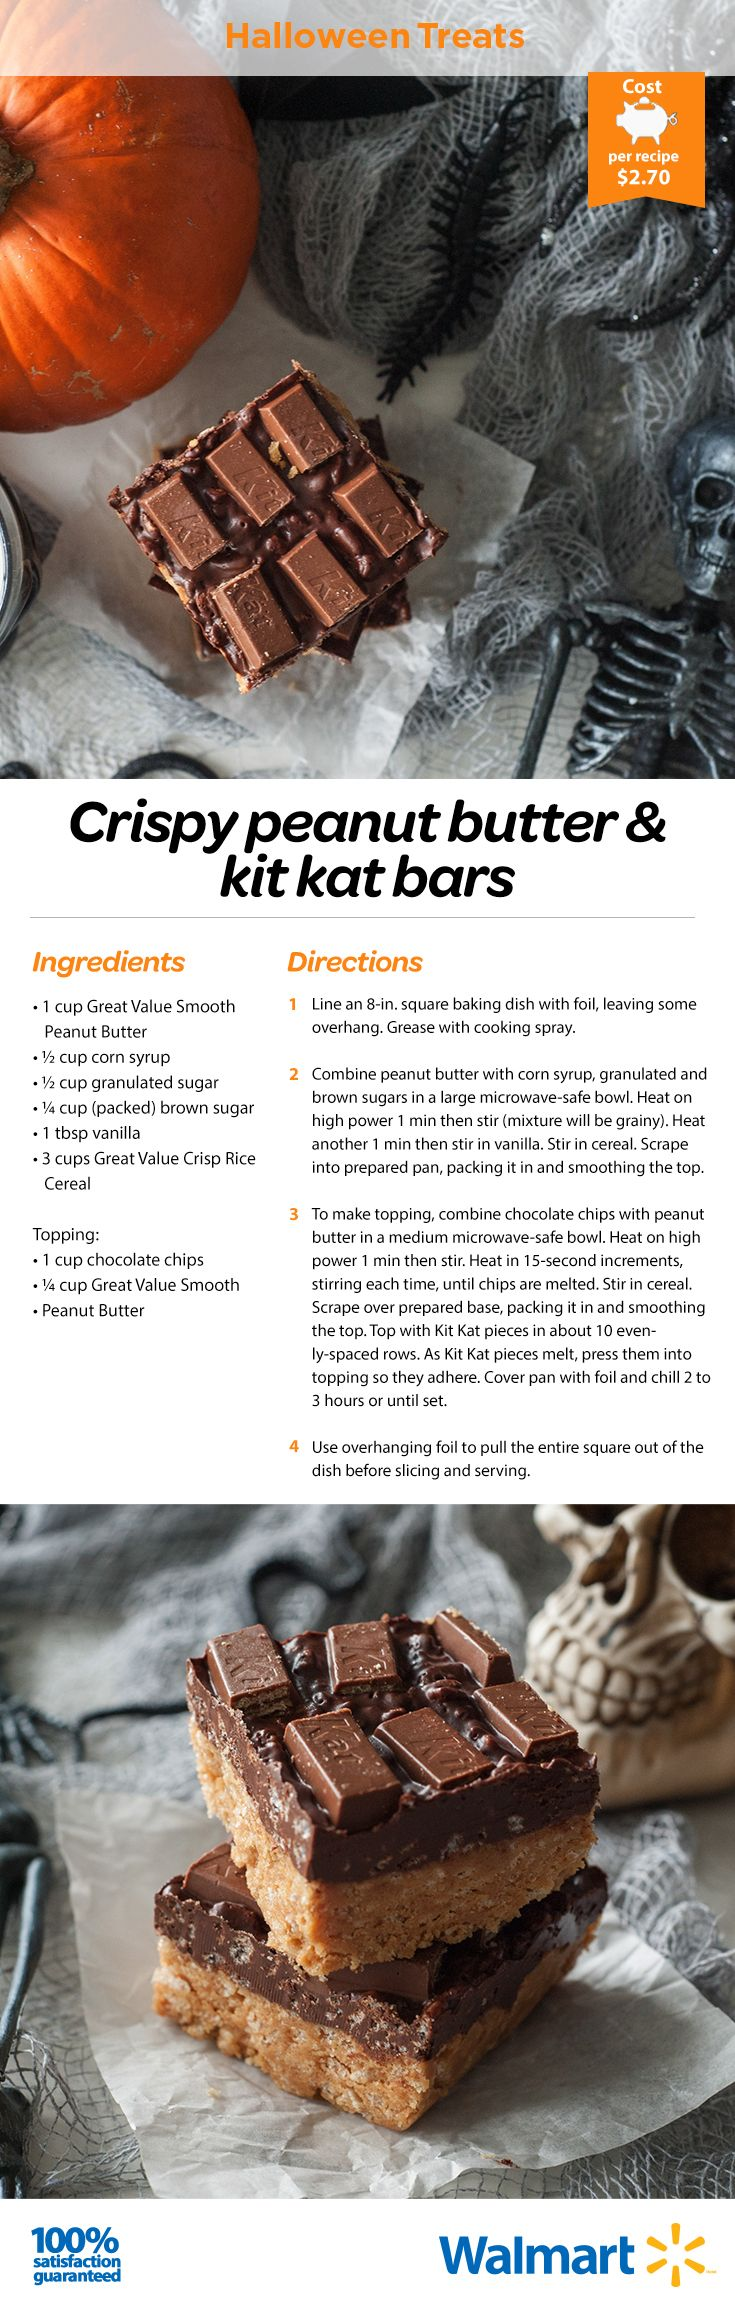 We have the Kit Kats in-store, you have the imagination at home. Whip up these Reese's Chocolate Kit Kat bars for #Halloween this year!  #Halloweendesserts #halloween2016 #trickortreat #chocolatebars #baking